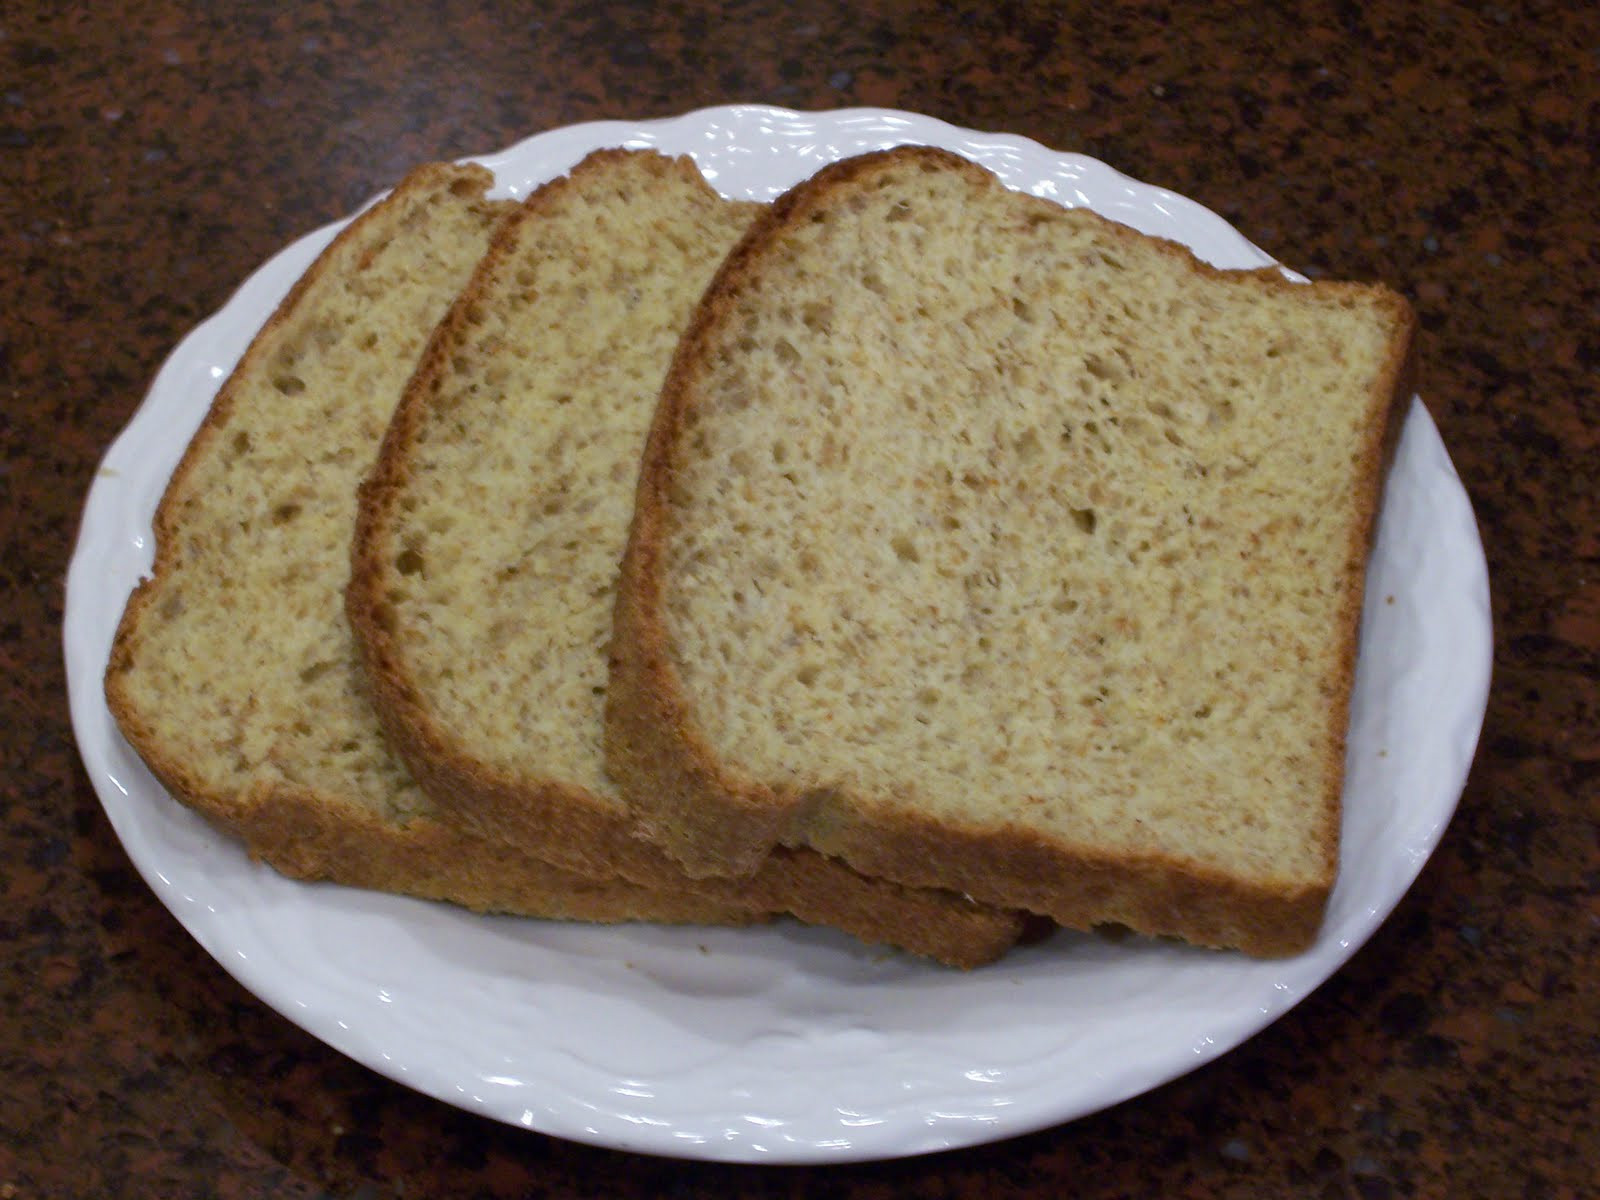 Vital Wheat Gluten Recipes Low Carb  Delicious Low Carb Recipes Low Carb Bread